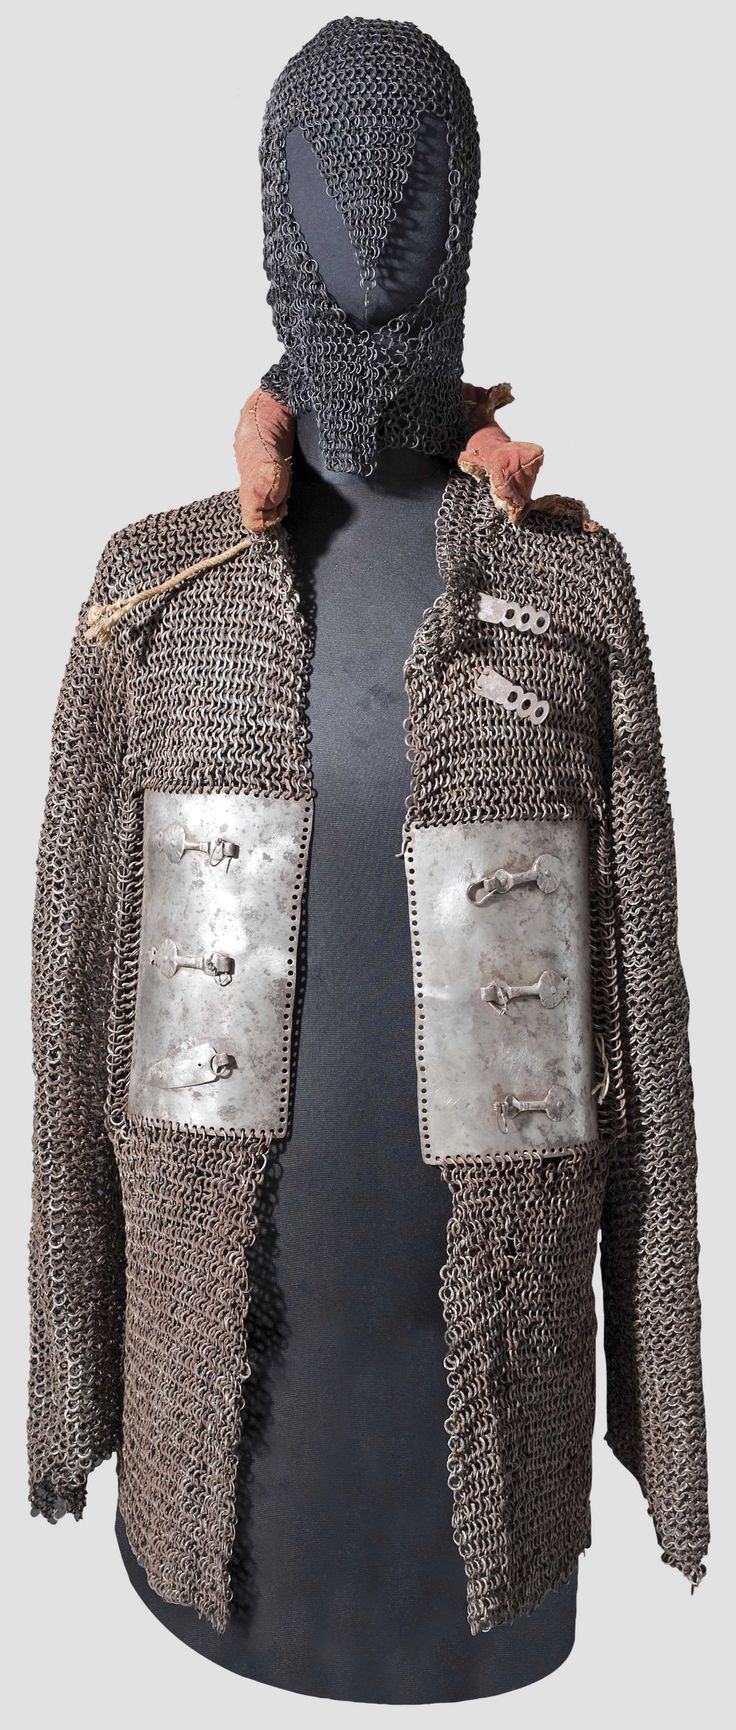 17 Best Images About Chainmail On Pinterest